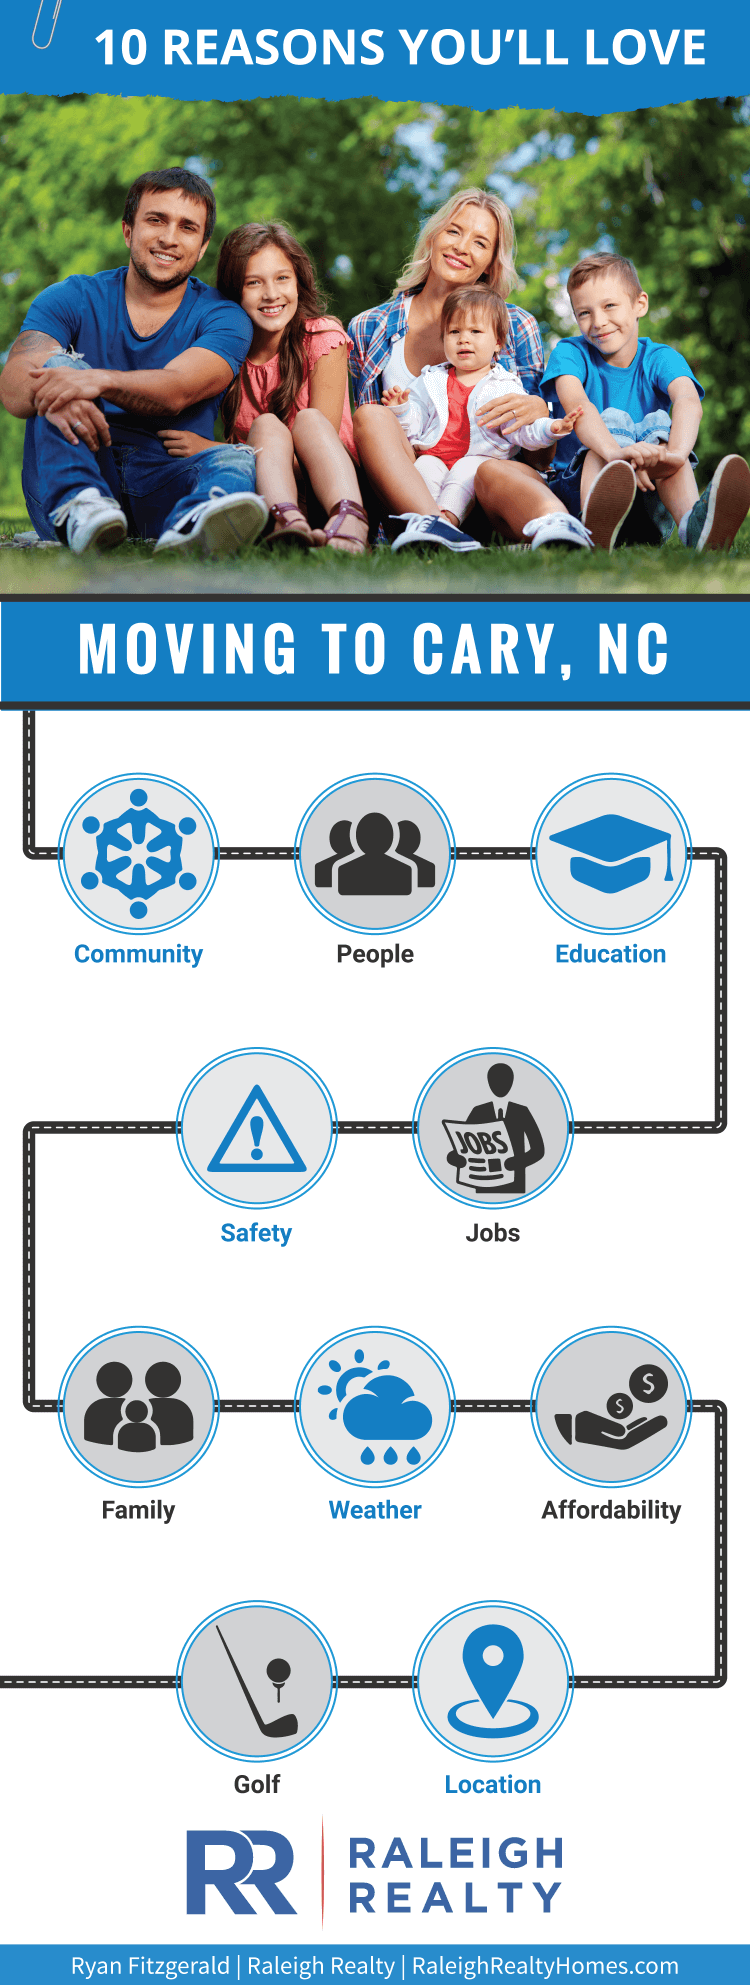 Moving to Cary, NC - What is life like when living in Cary?